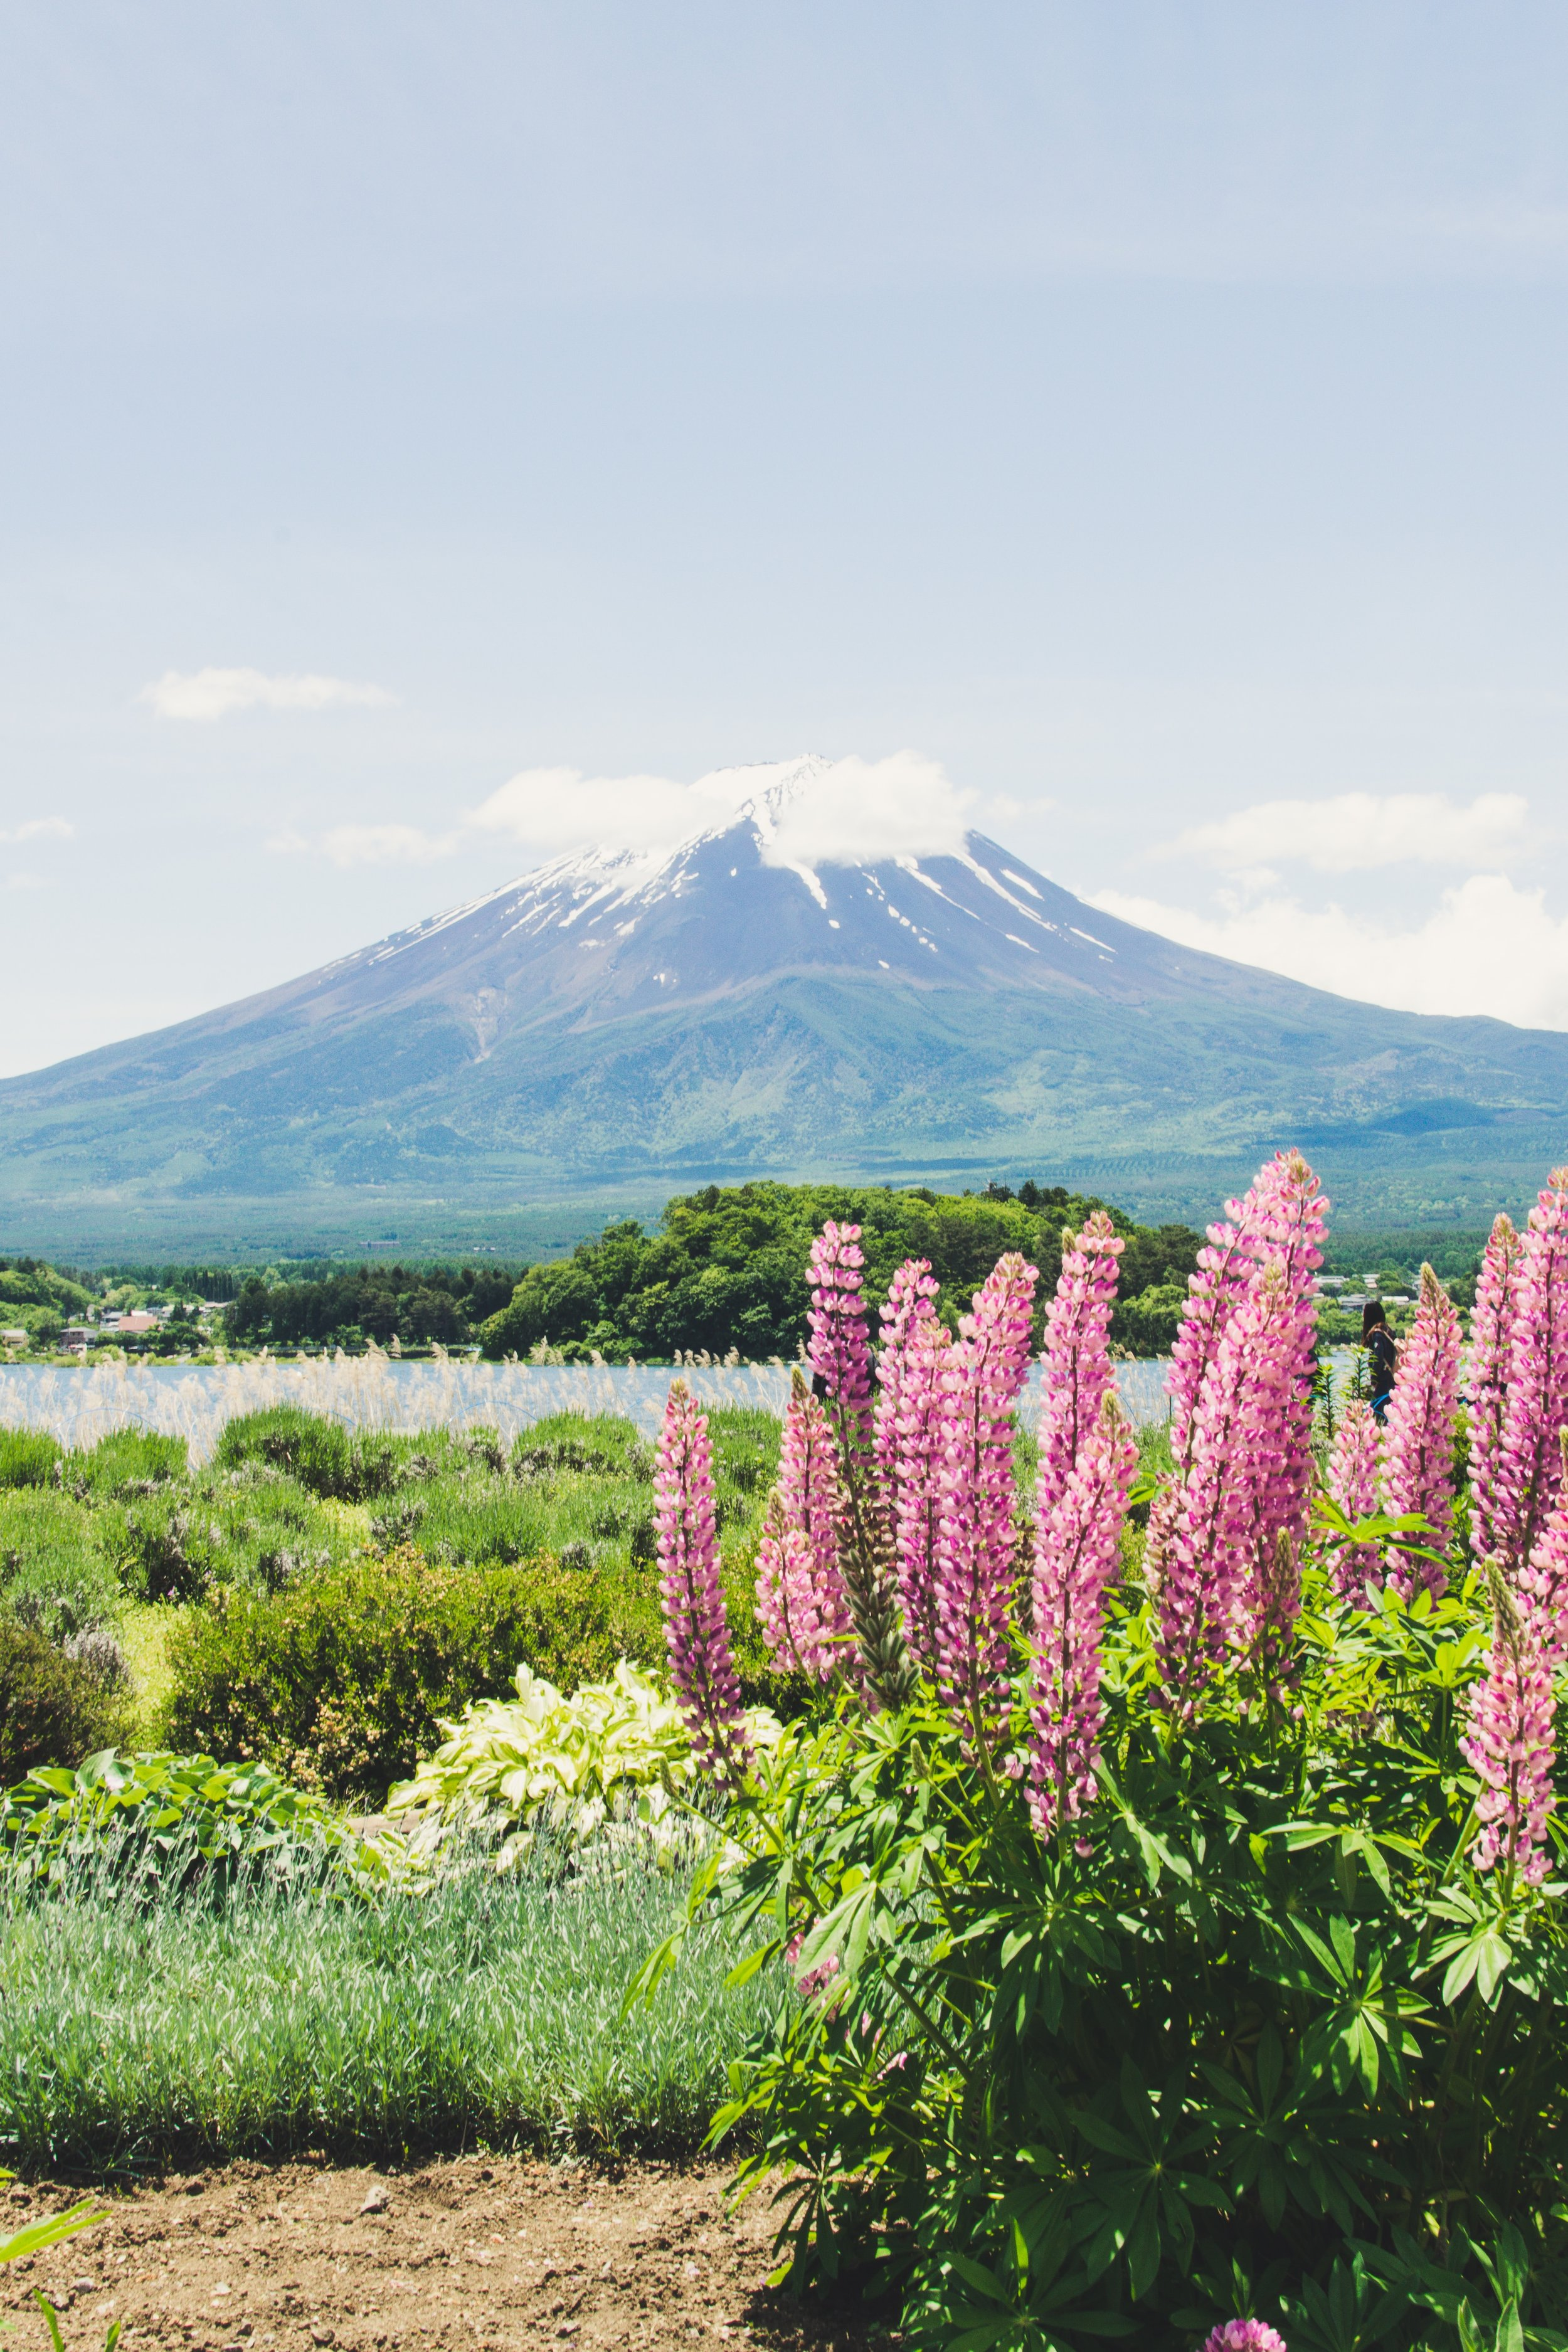 Mount Fuji with pink flowers in the foreground